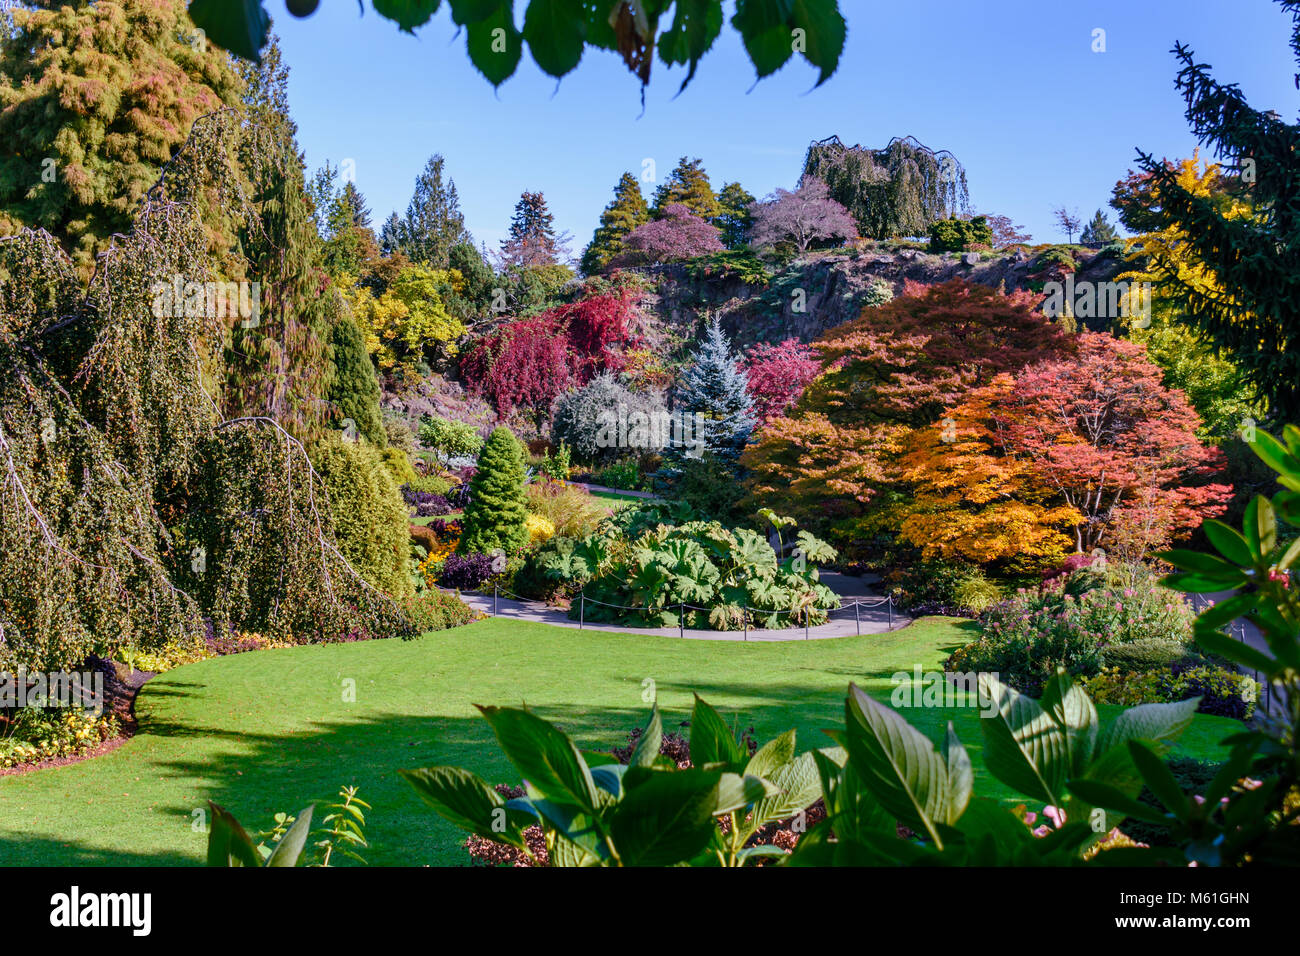 Arboretum with colorful trees and bushes, green lawn and blue sky on ...